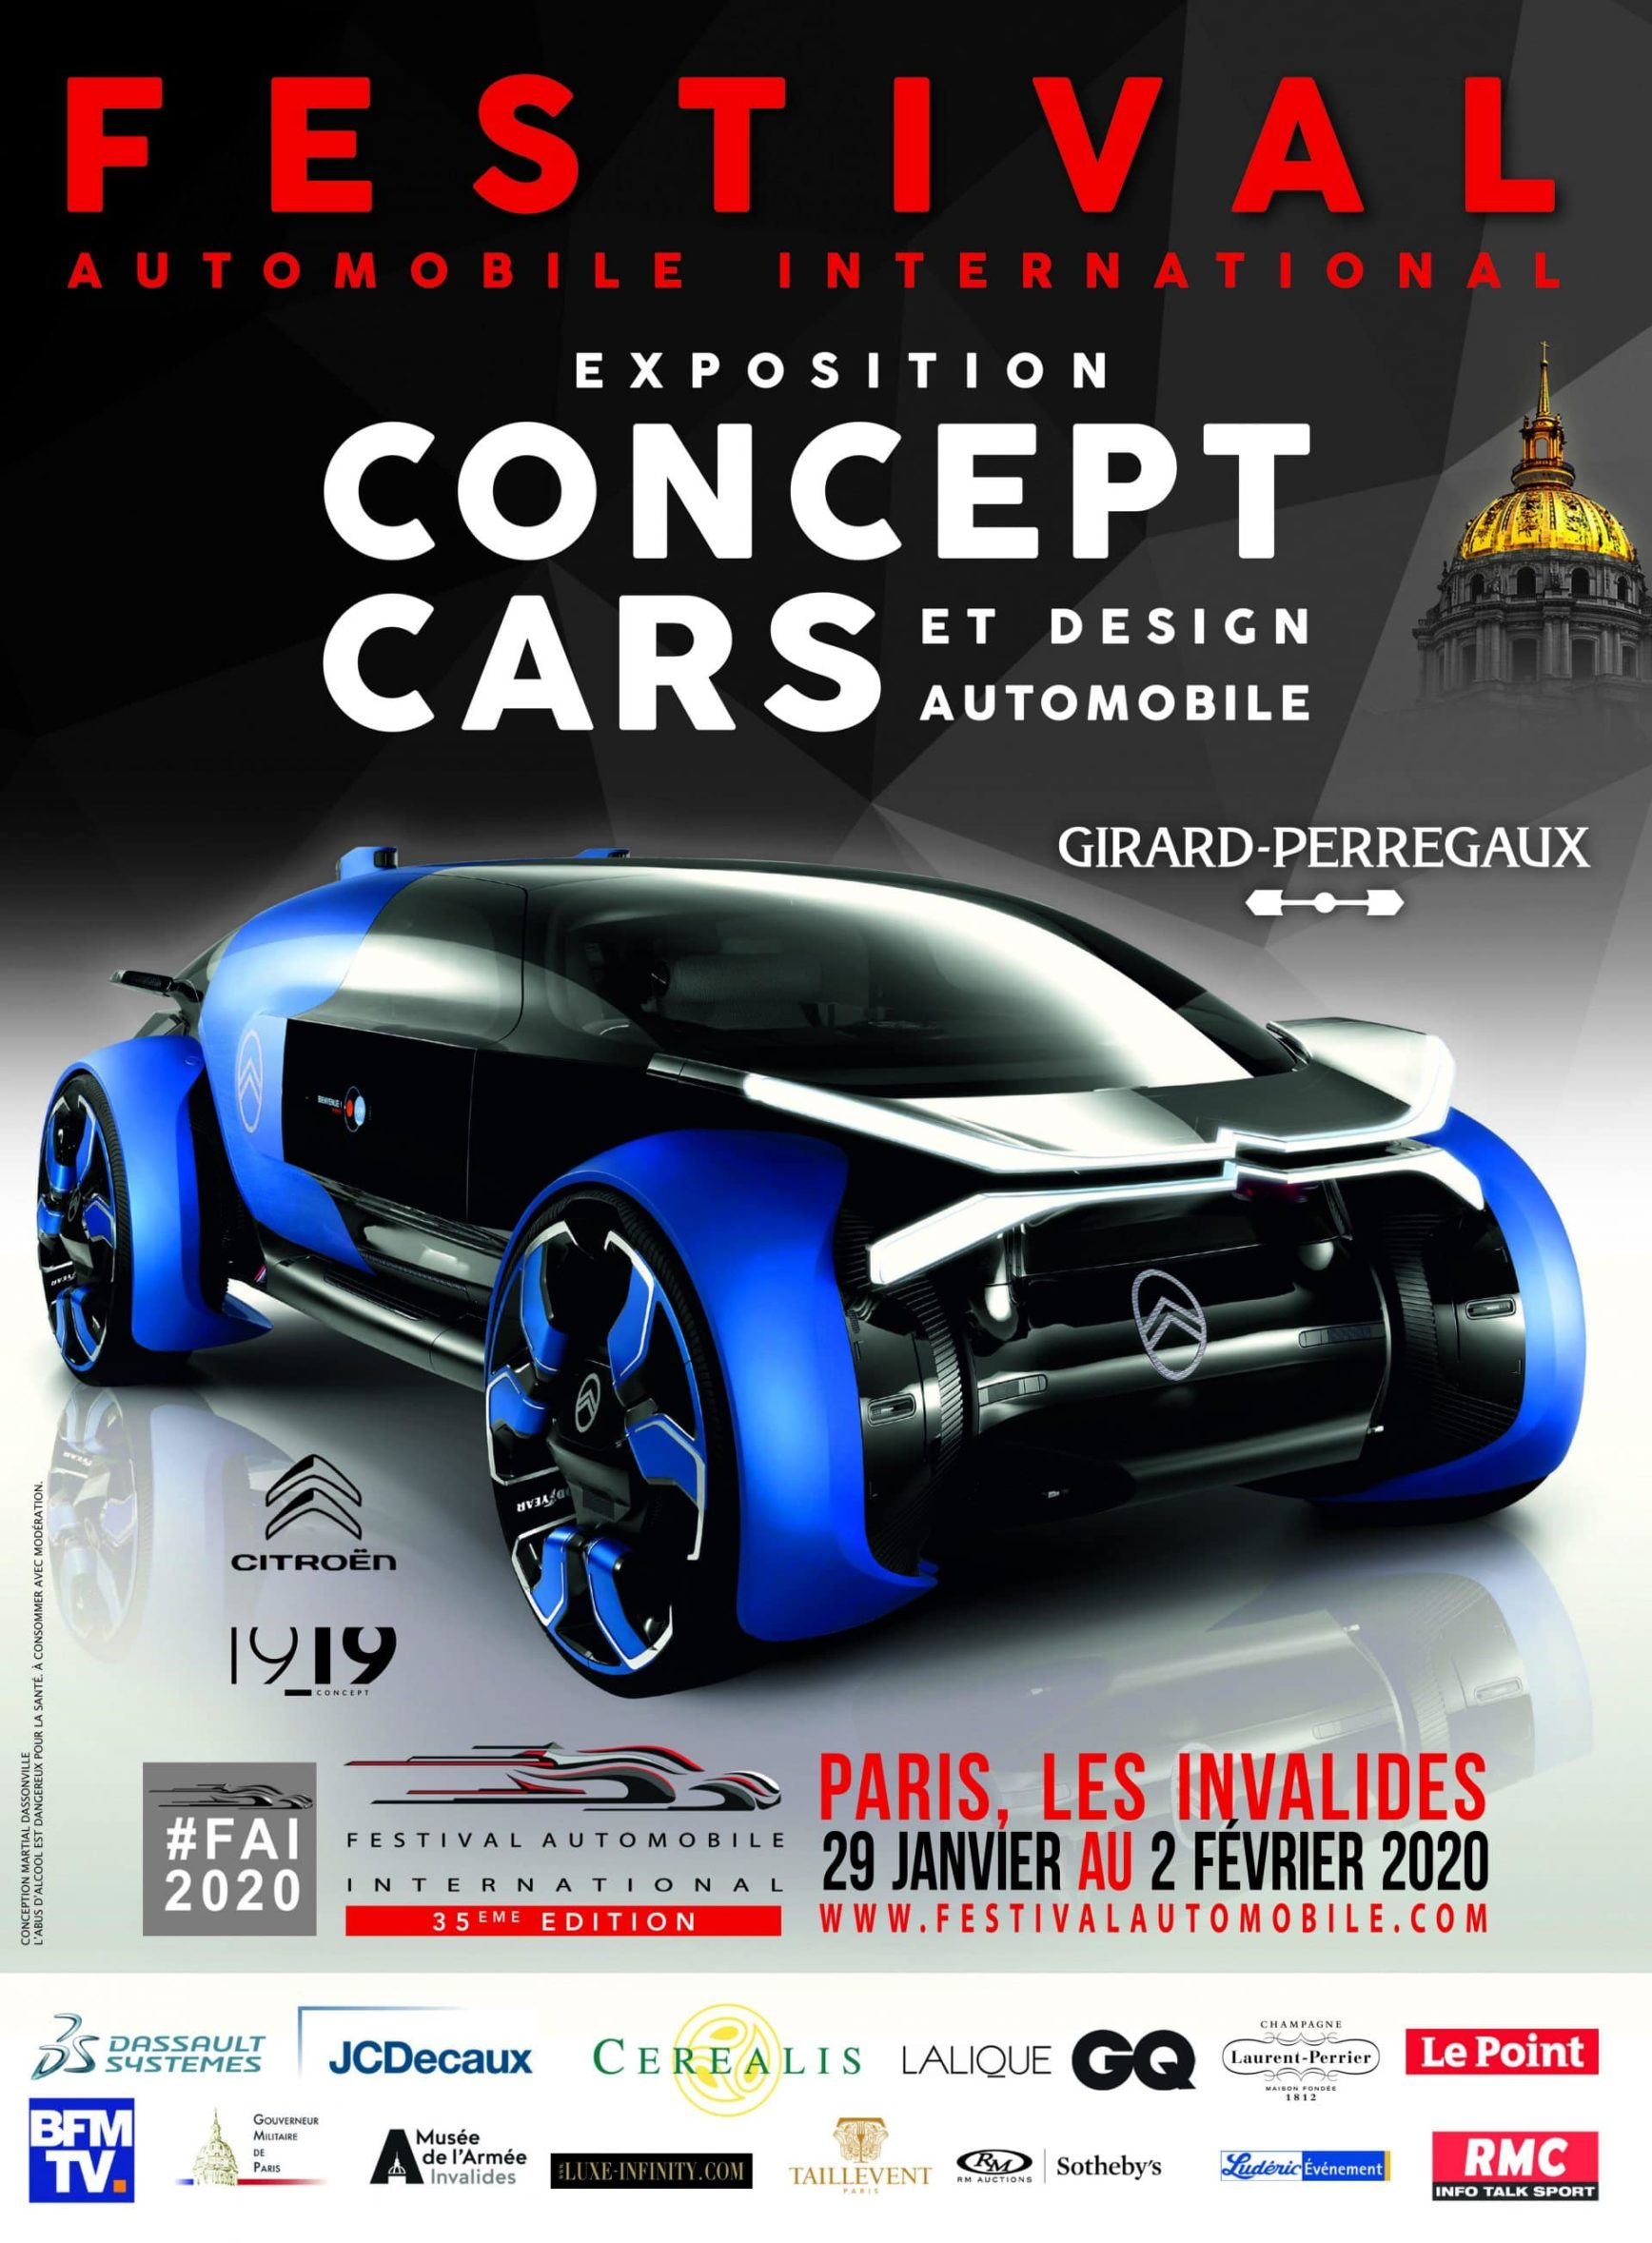 Festival Automobile International 2020 - exposition Concept Cars - Design Automobile - poster